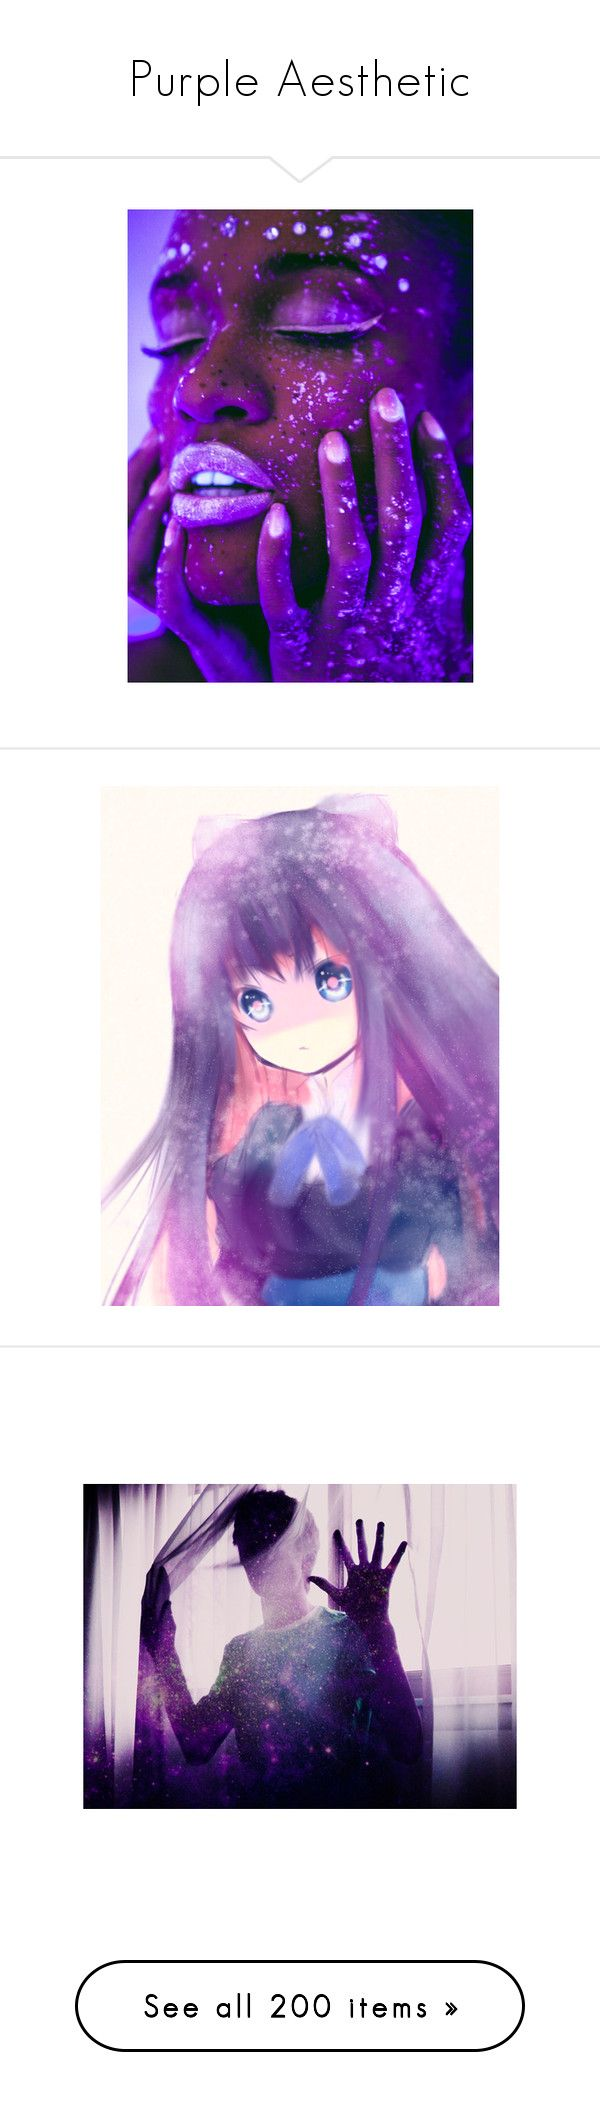 """""""Purple Aesthetic"""" by lux-winchester ❤ liked on Polyvore featuring backgrounds, pictures, faces, people, makeup, anime, anime/manga, purple, photos and fillers"""